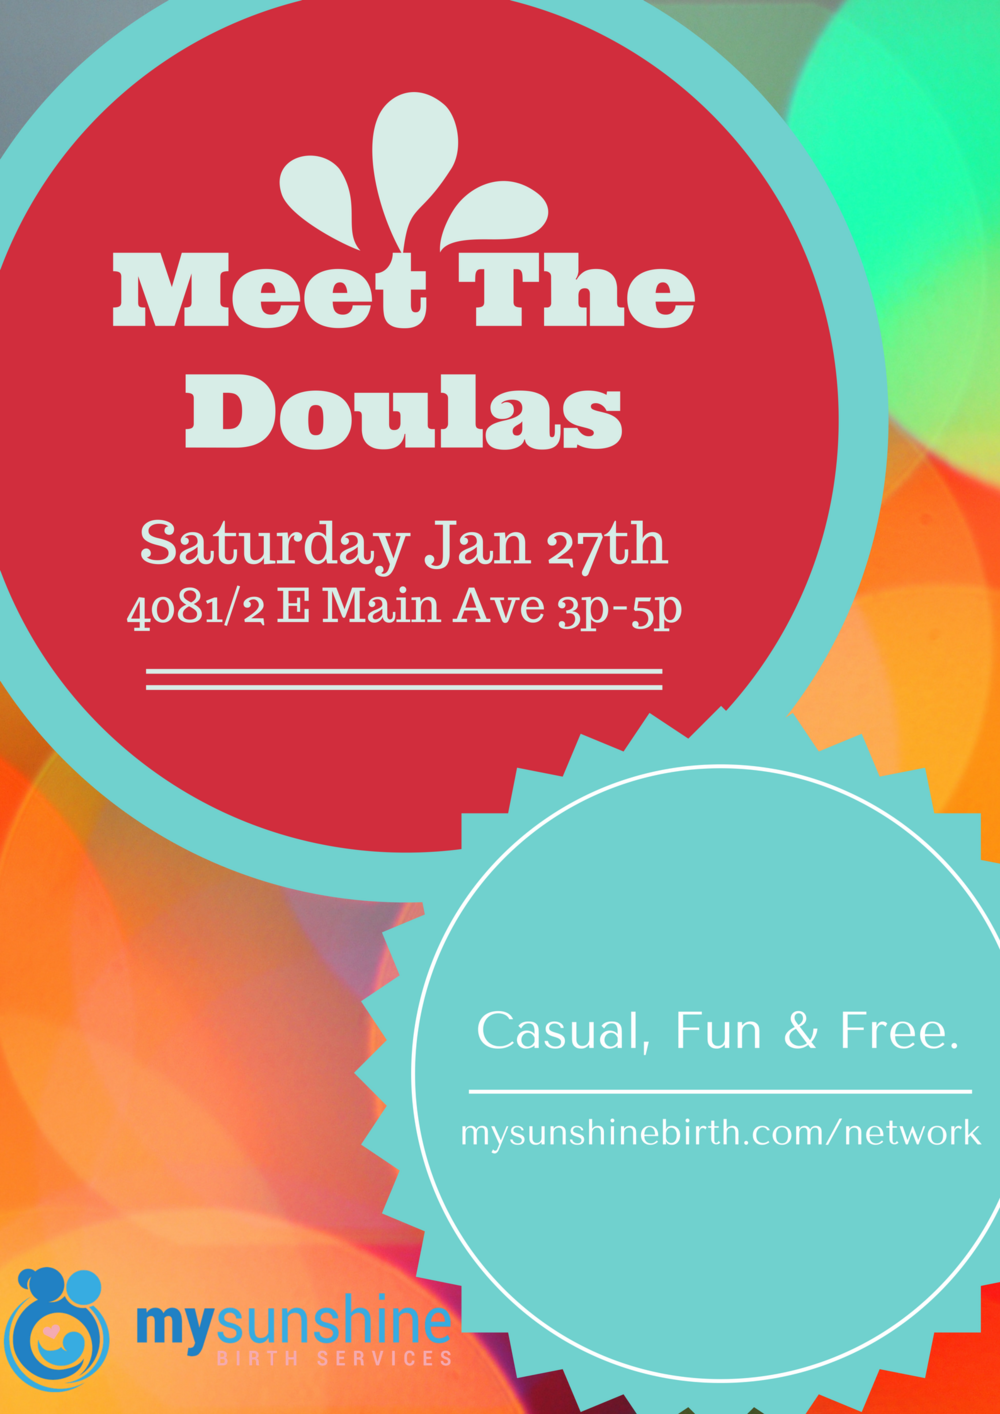 MeetTheDoulas.png